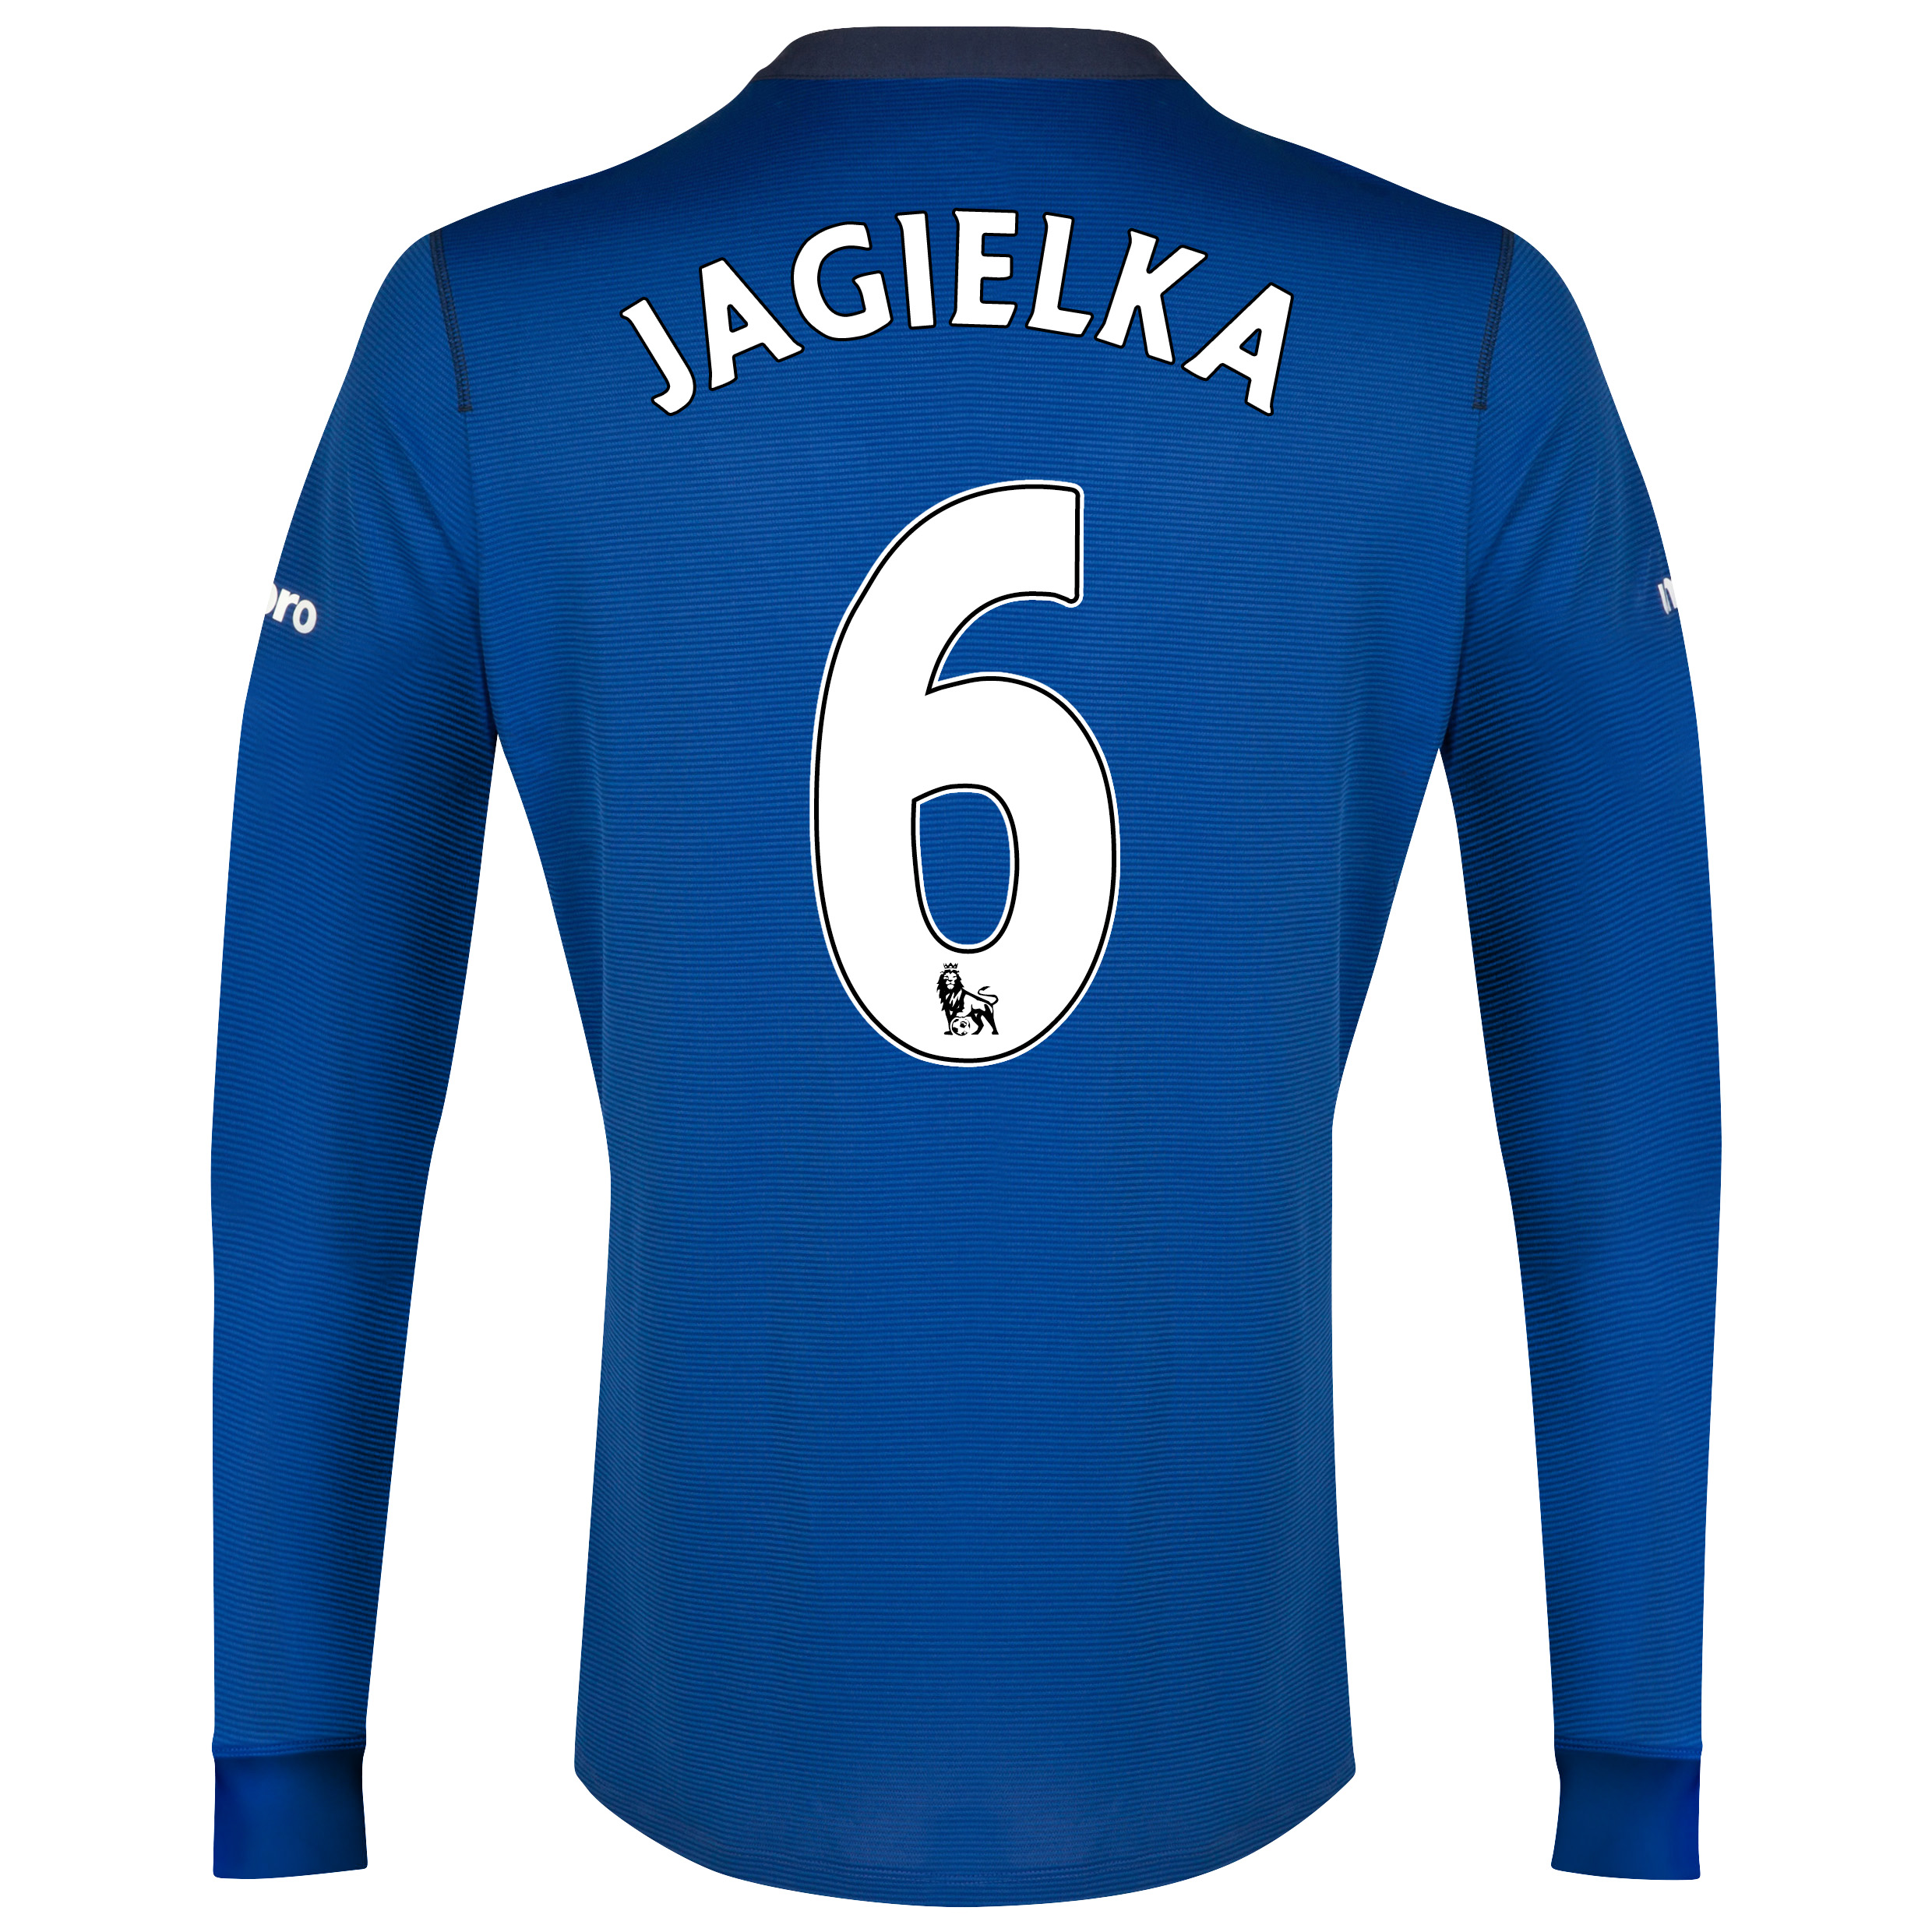 Everton LS Home Shirt 2014/15 with Jagielka 6 printing